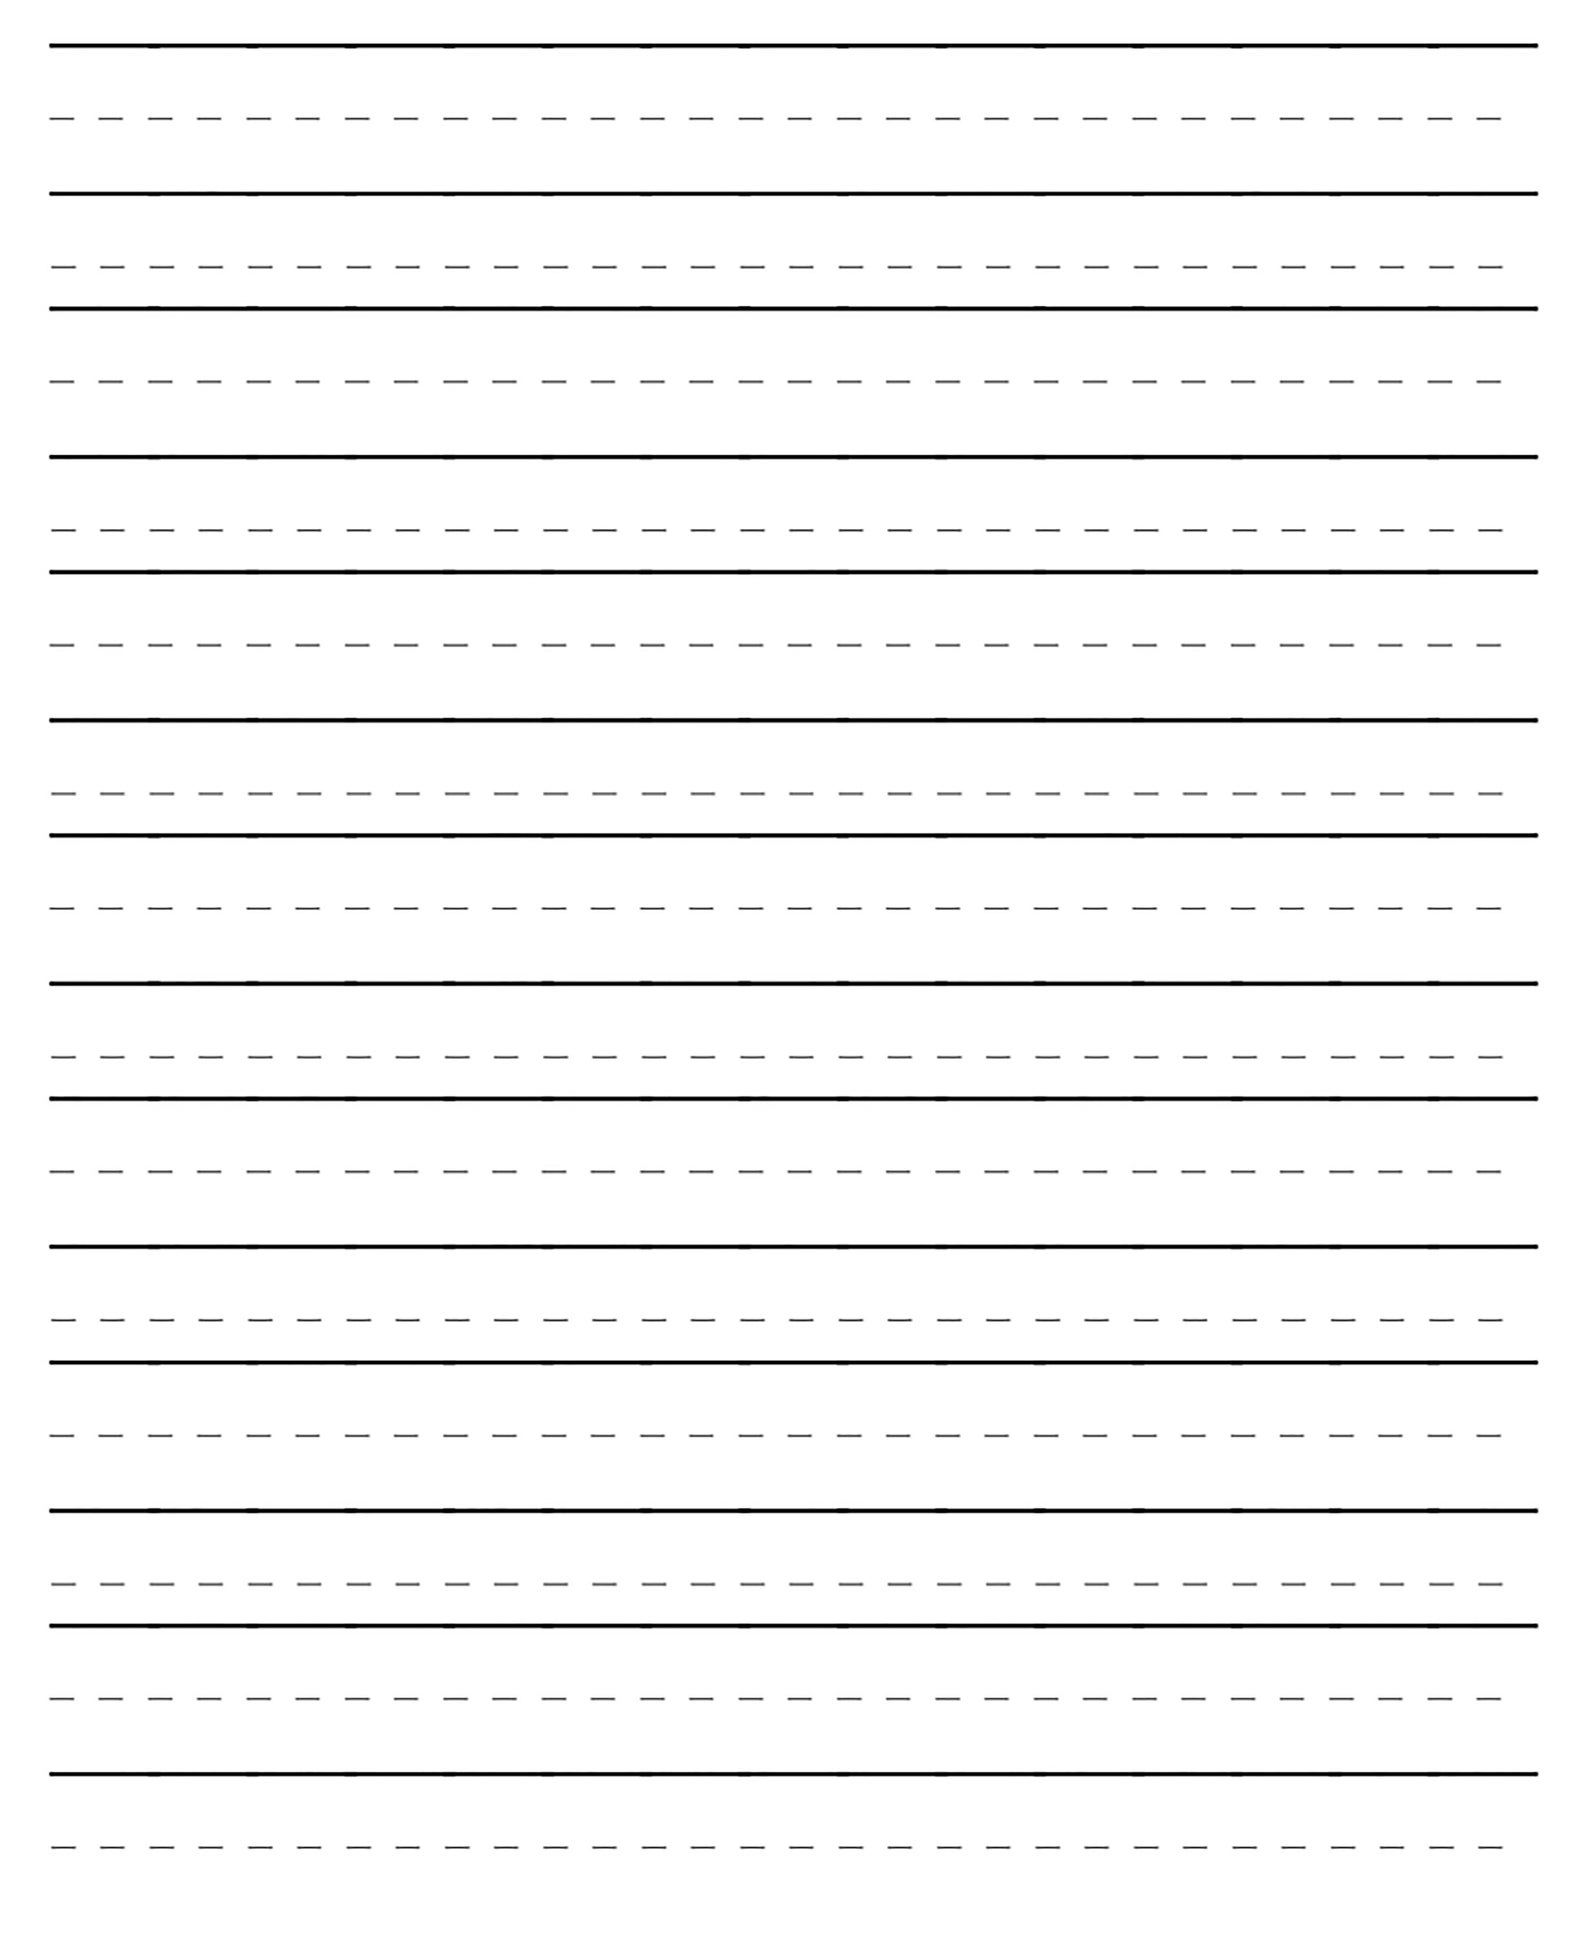 Alphabet Tracing Pages Printable Tracing Worksheets